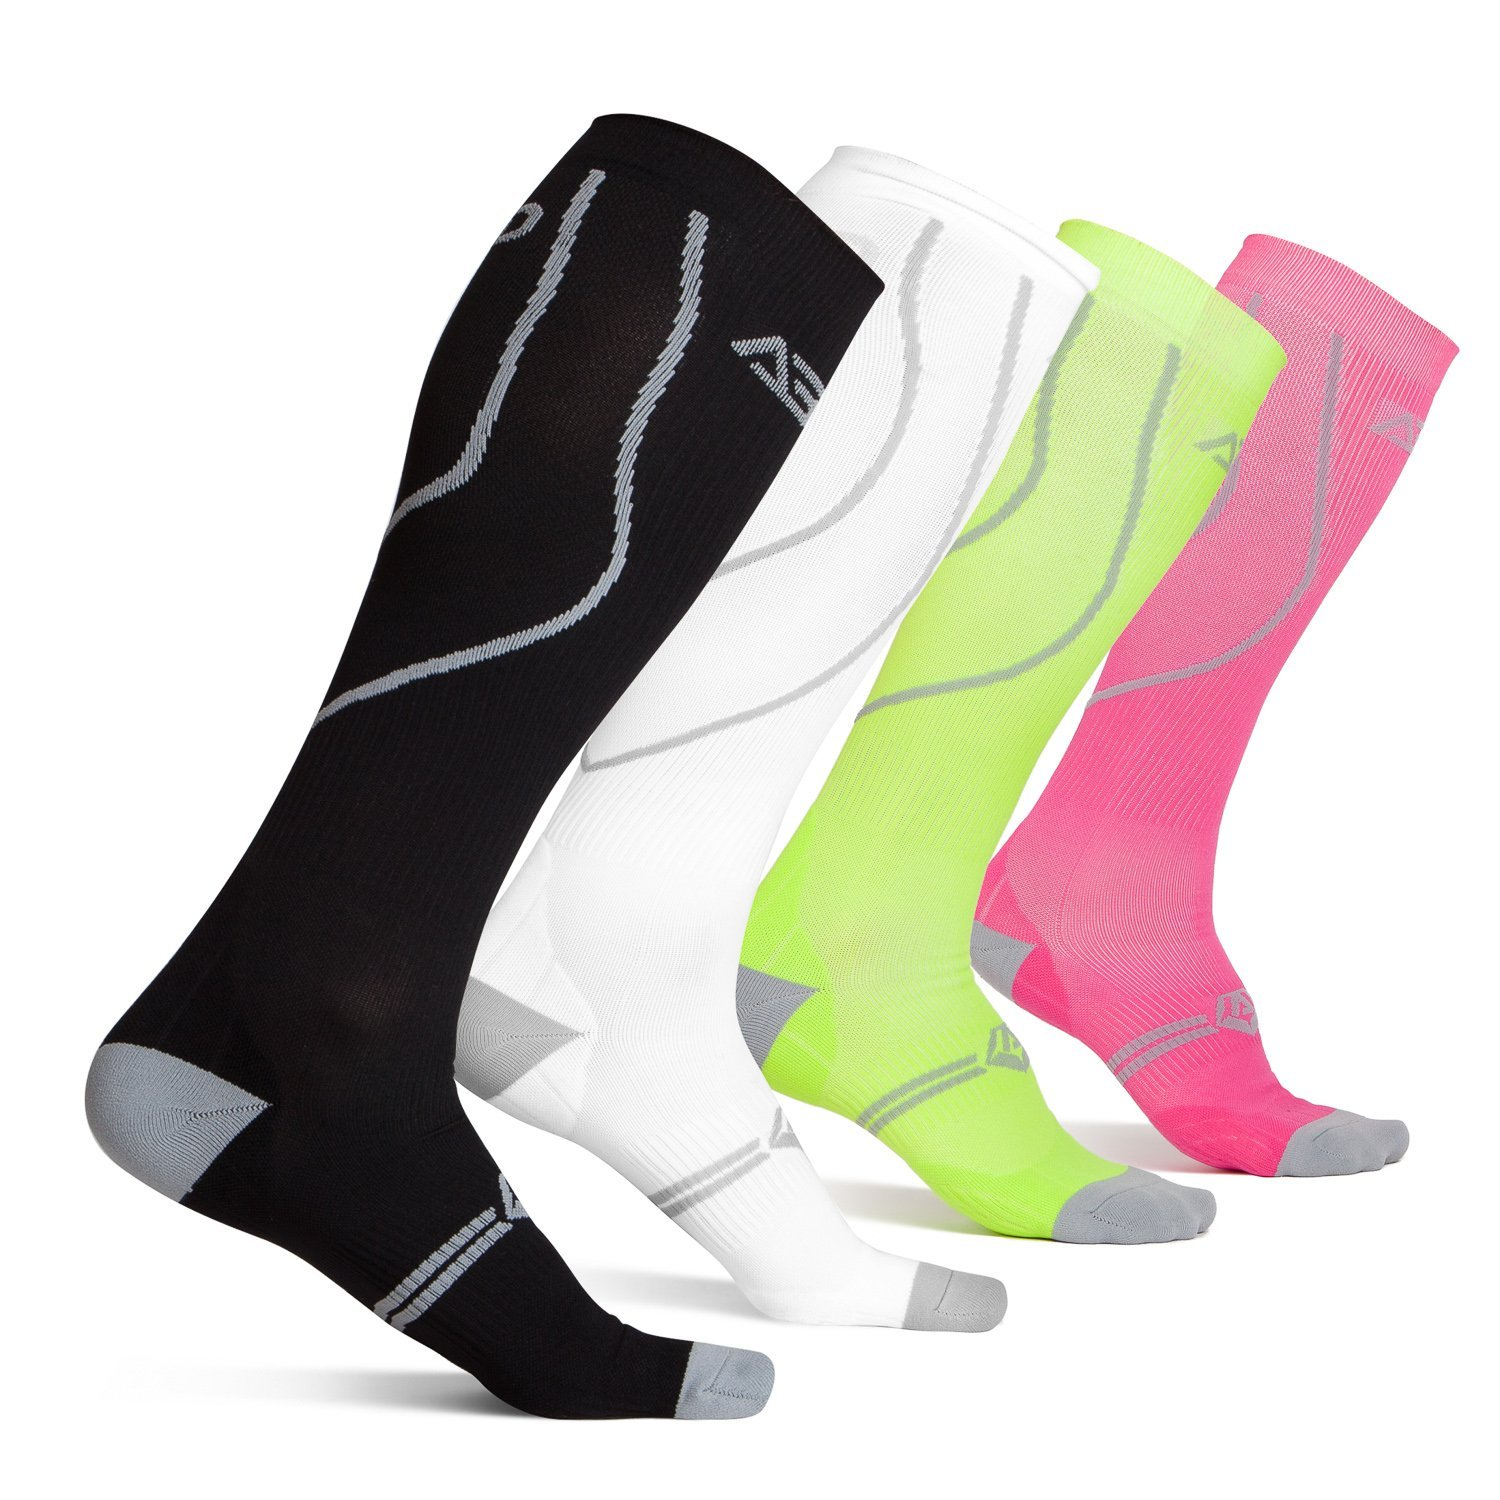 Premium Compression Socks by ABD